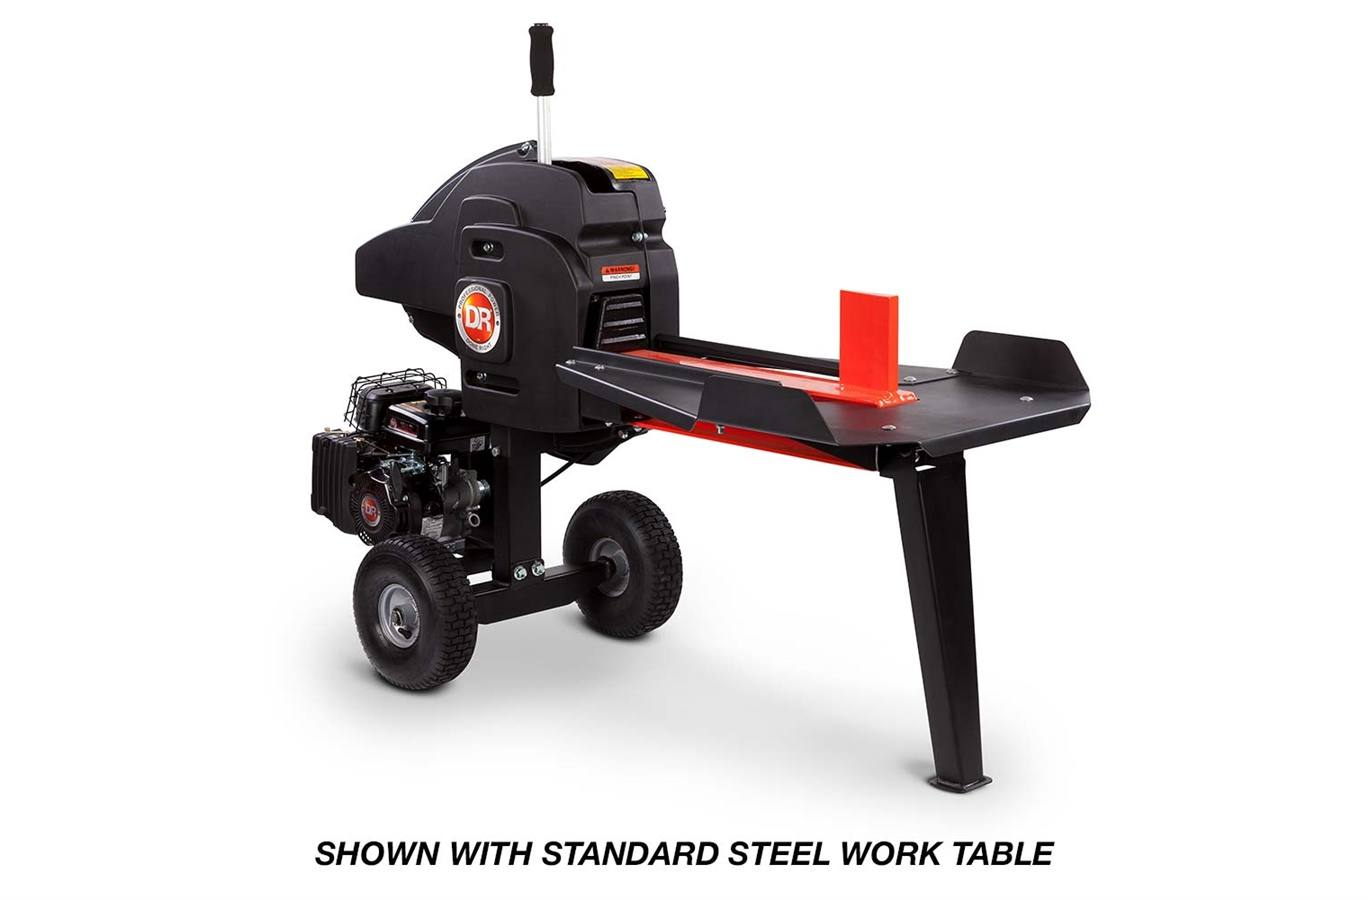 WR33122DMN DR RapidFire Flywheel Log Splitter With Heavy Duty Table